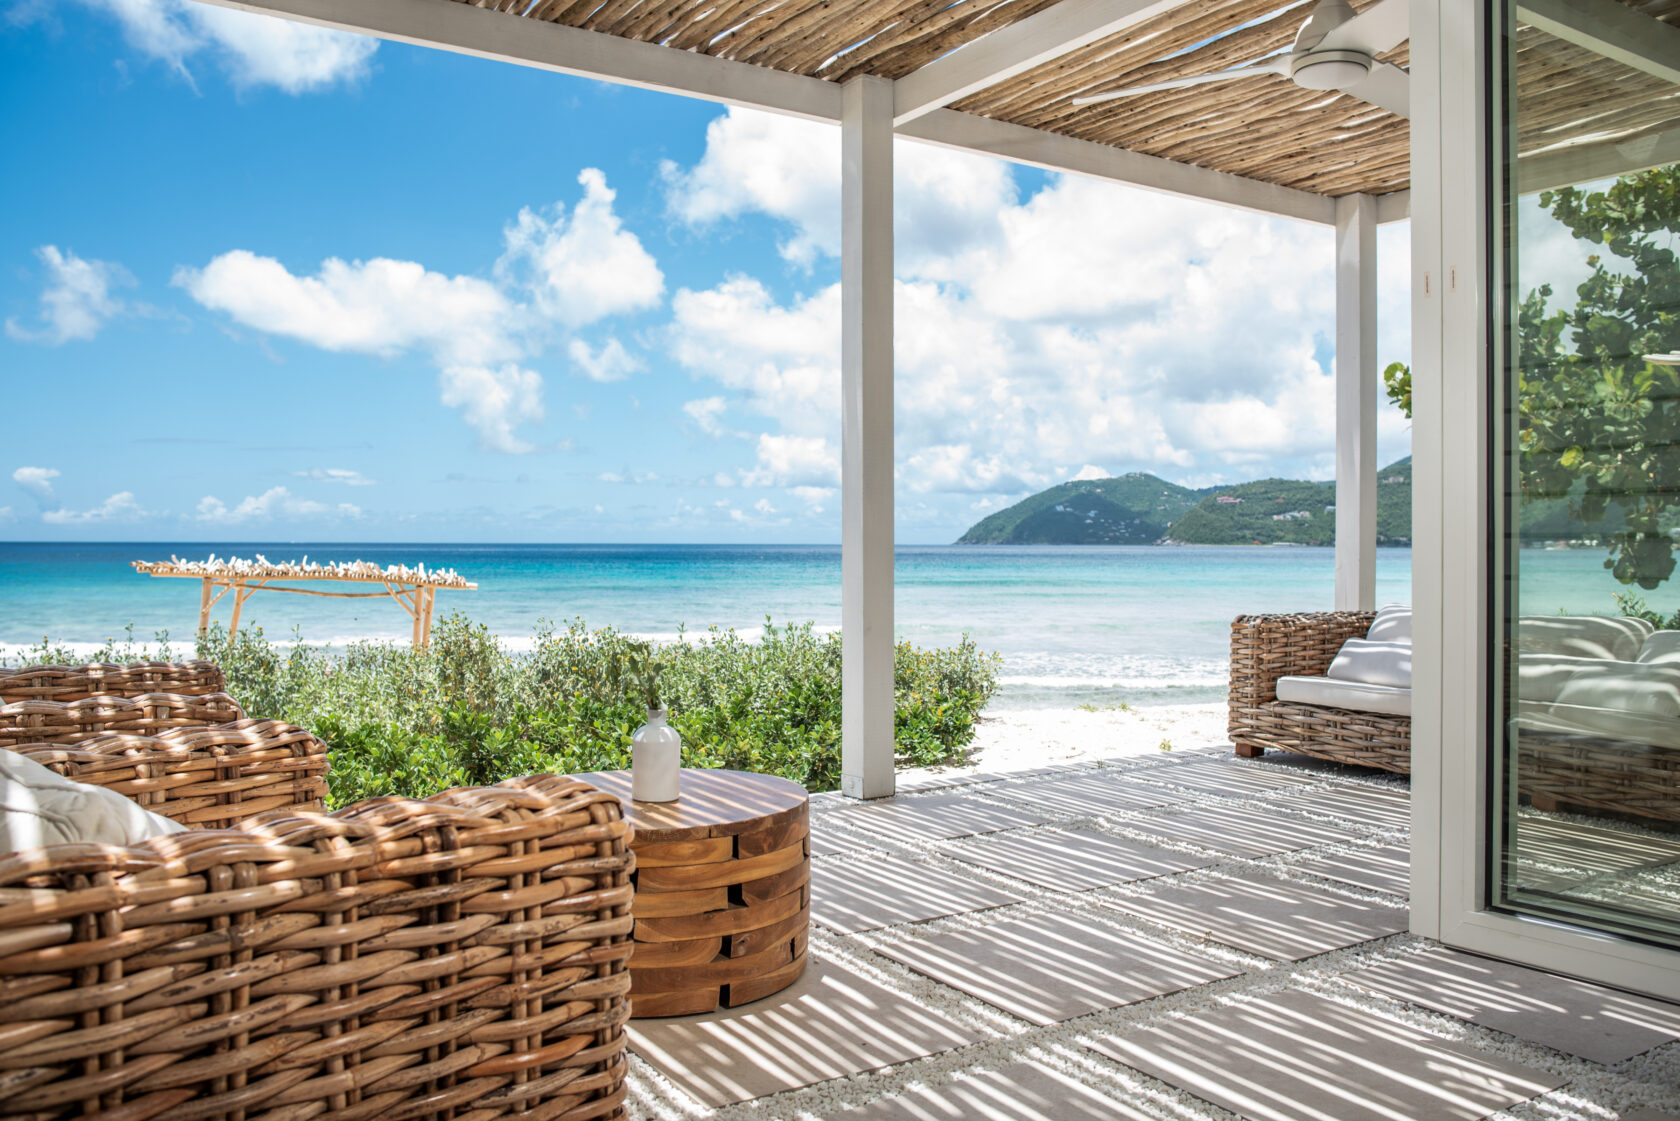 Beachside covered porch with views of the distant mountains